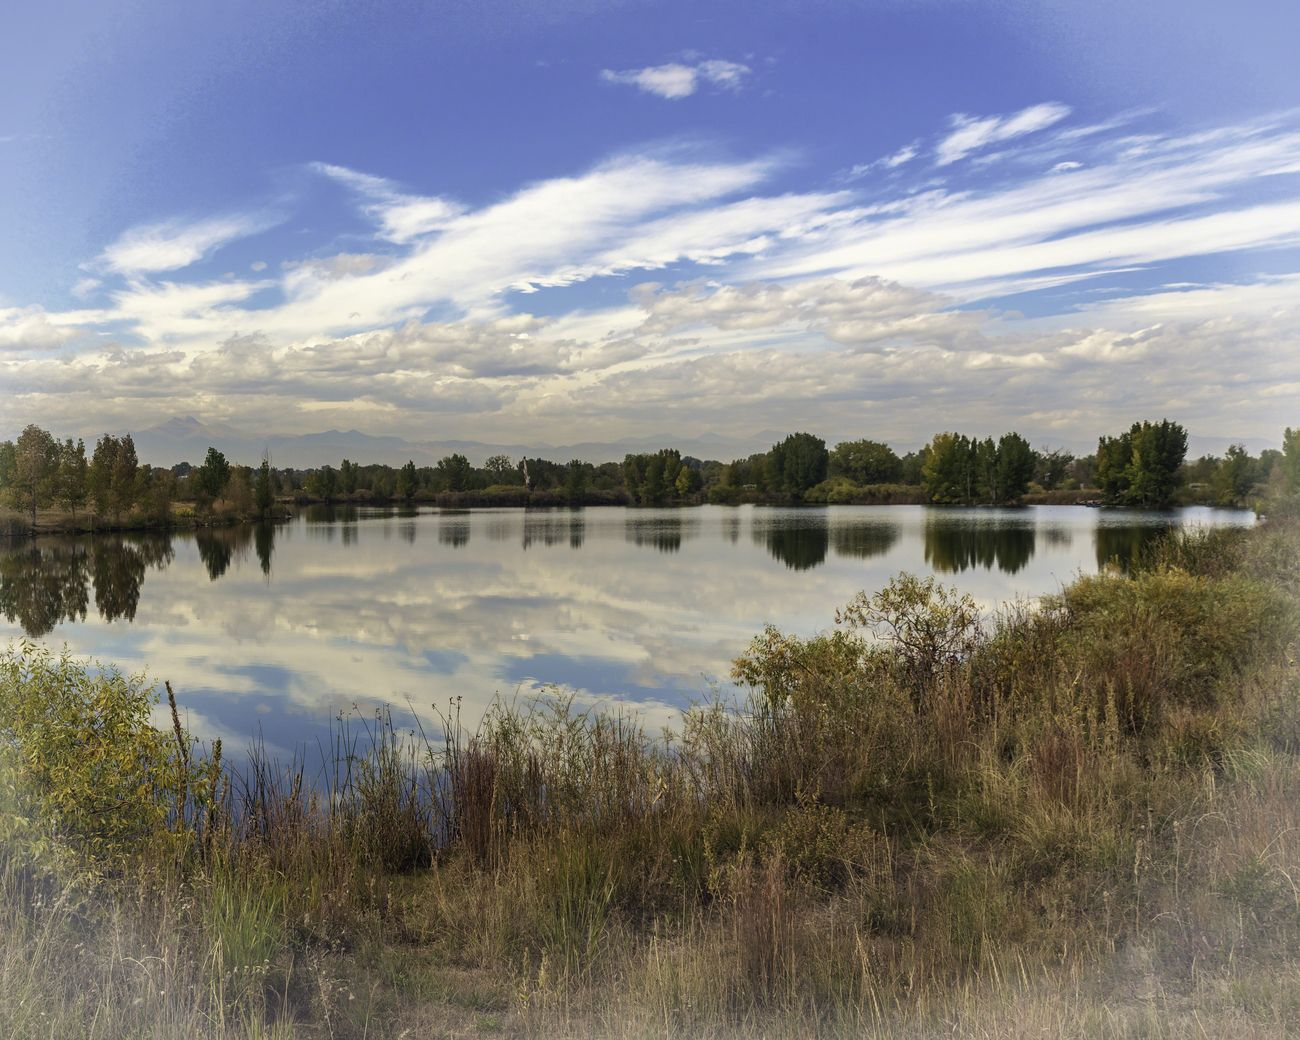 Cloudy sky over small lake at The Saint Verain Park in Longmont Colorado.